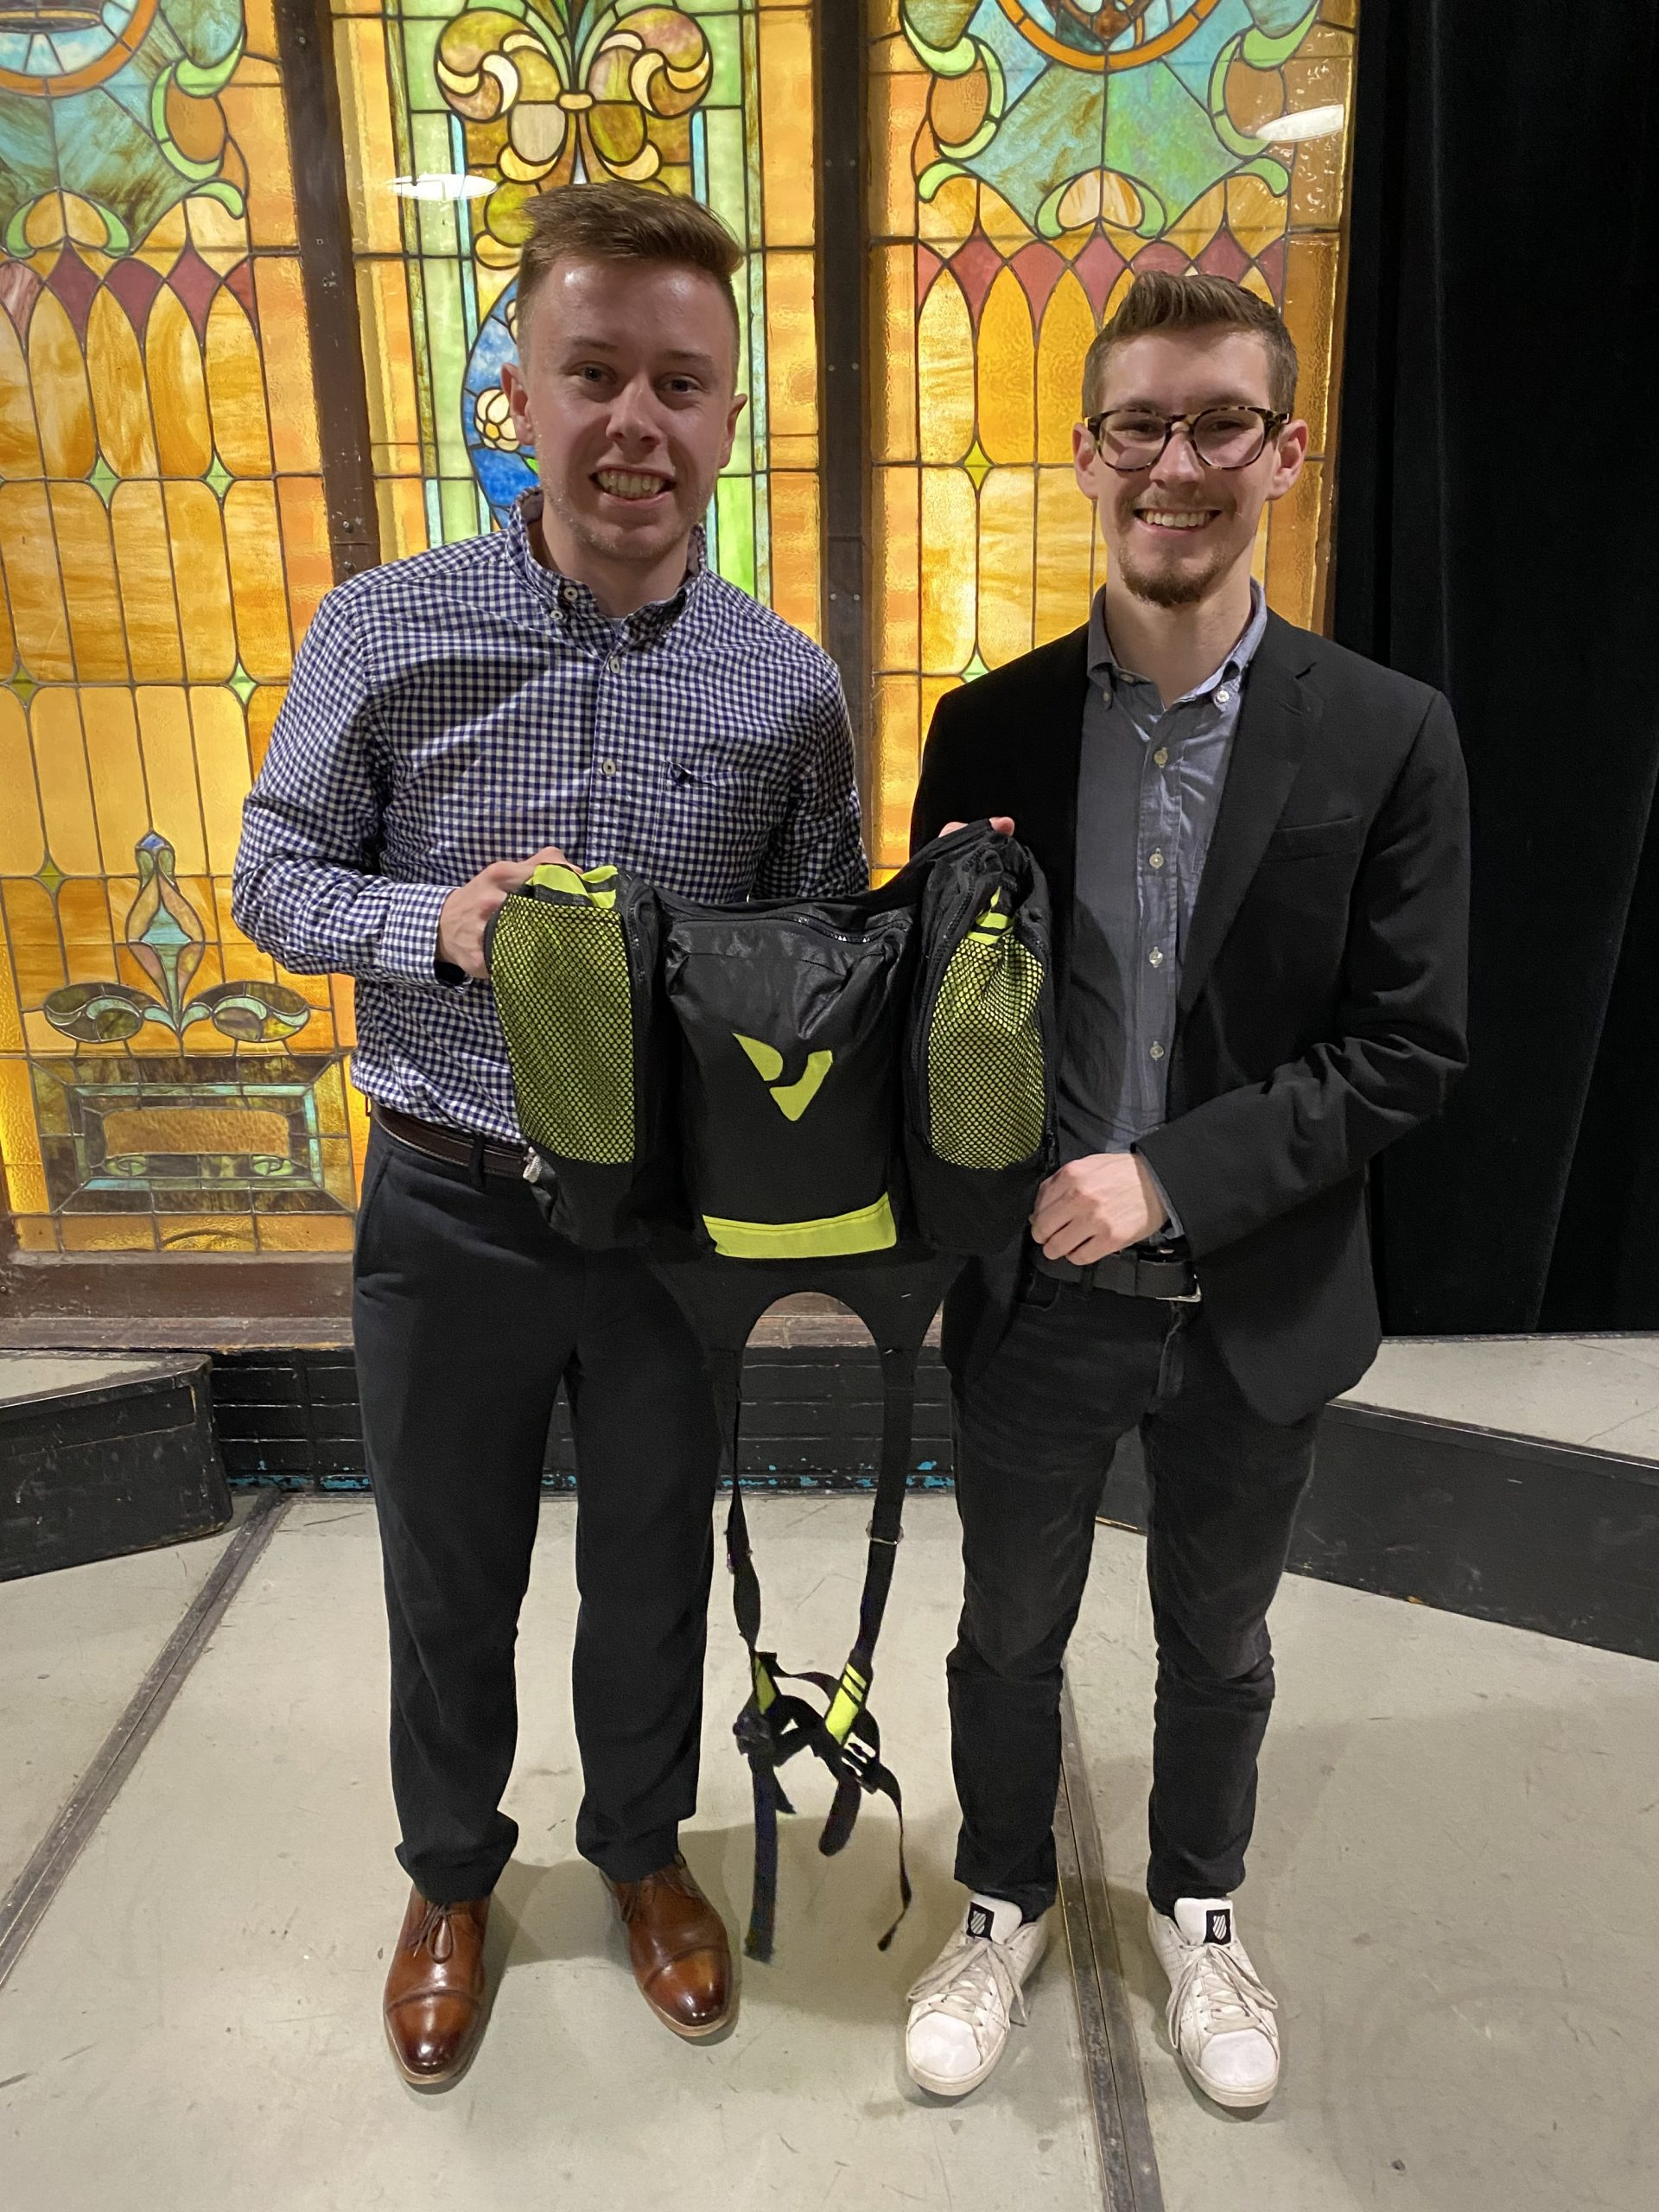 Ben Grote and Anthony Ward with their Viper Gym Bag prototype